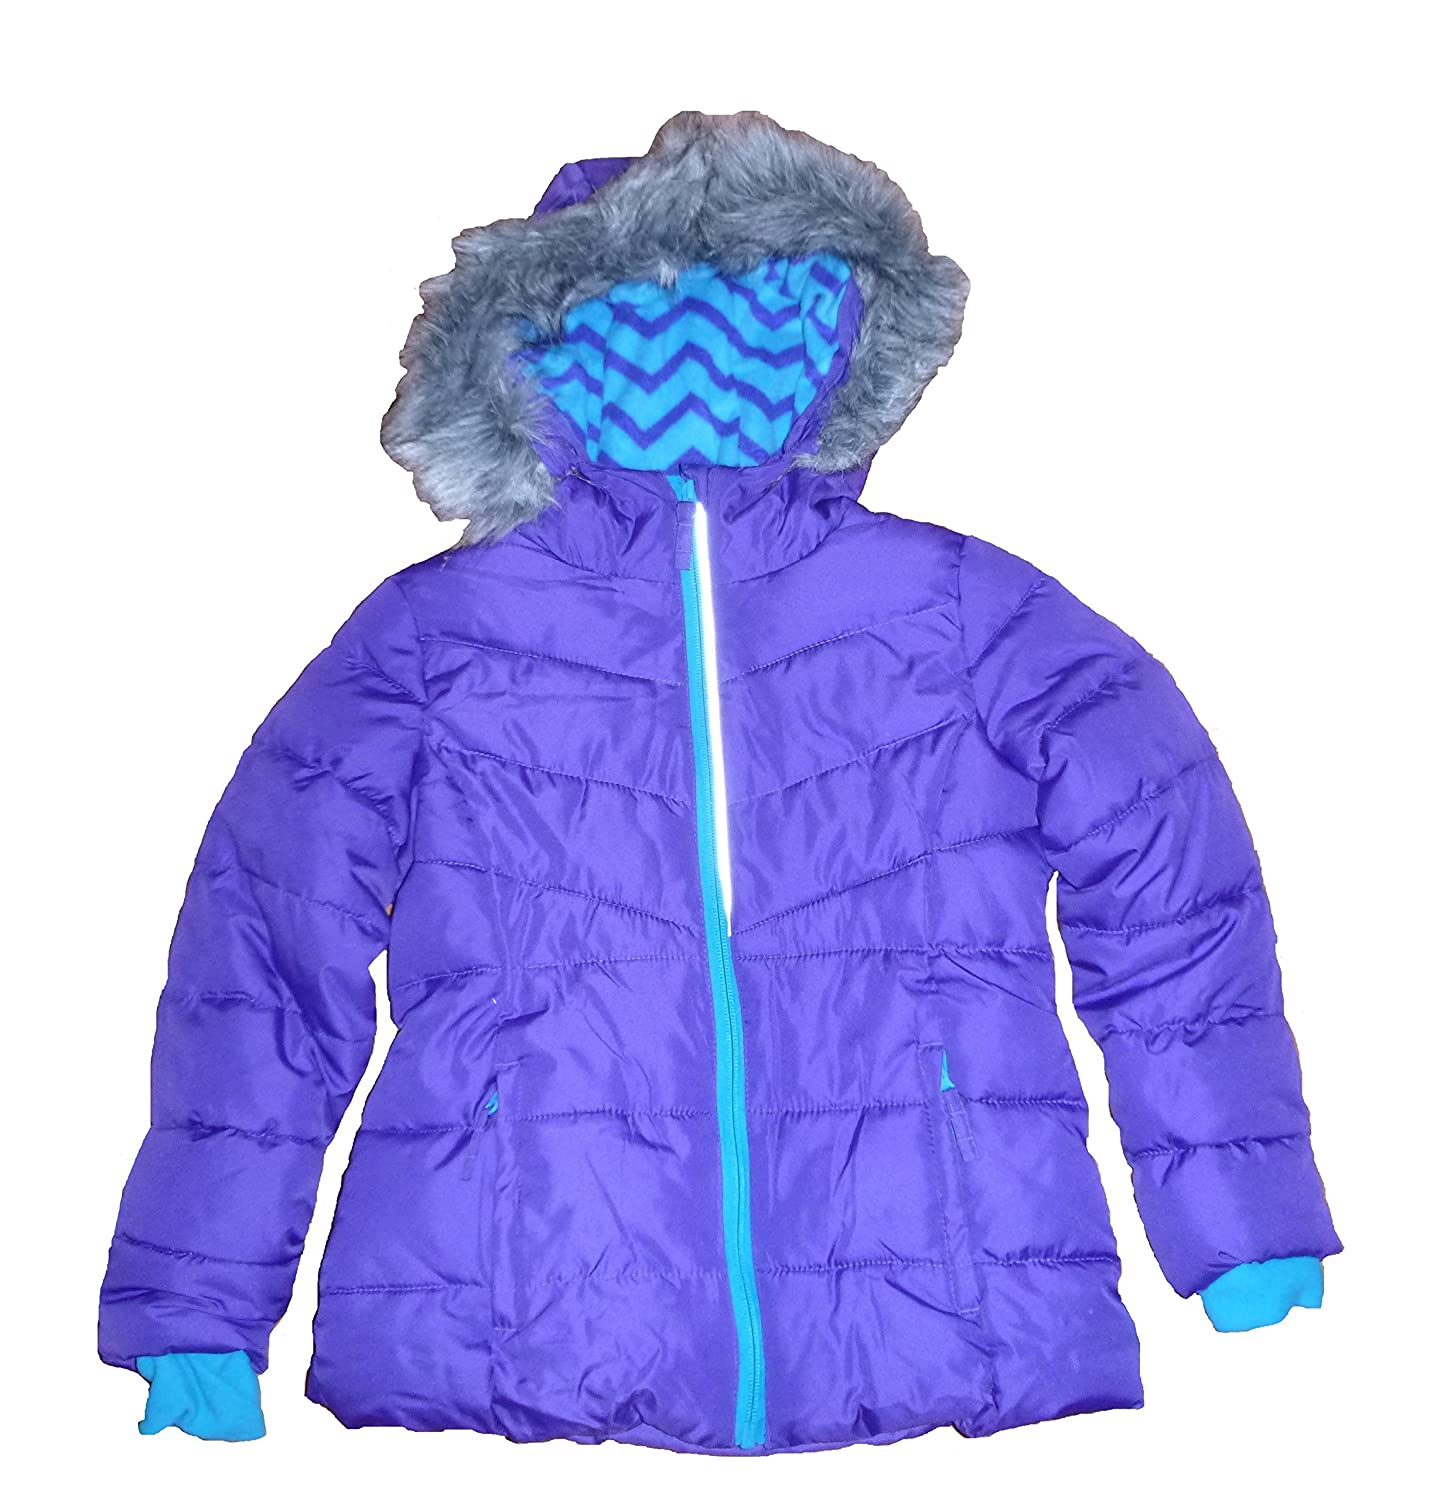 5c2d2971f Amazon.com  Falls Creek Girls Purple Lined Puffer Jacket Coat With ...